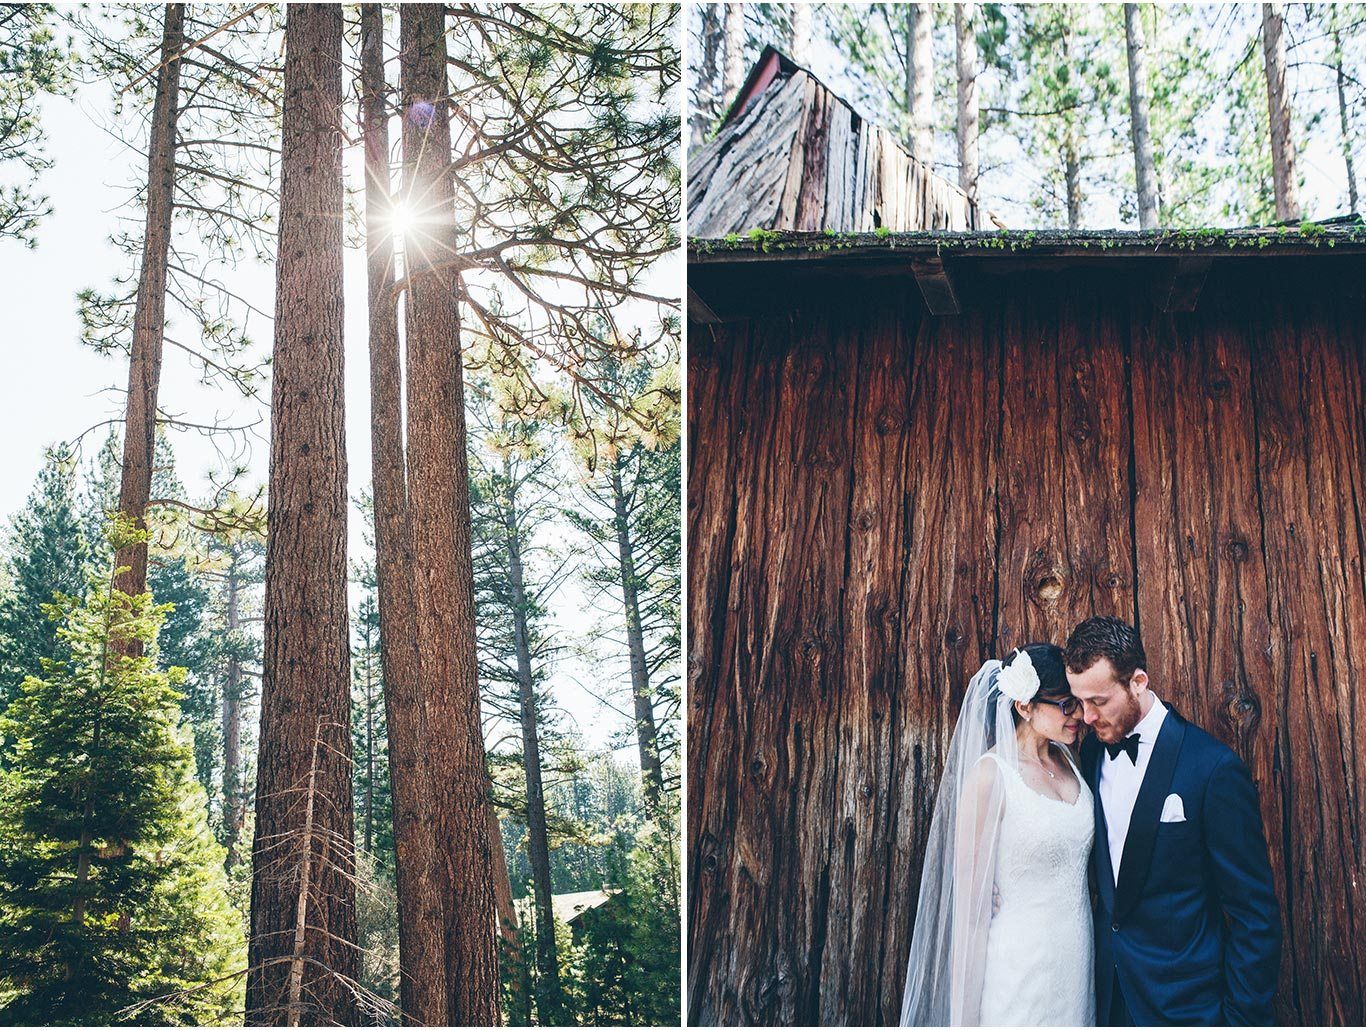 Damiano + Rebecca | Camp Richardson | Lake Tahoe, California | www.vitaeweddings.com